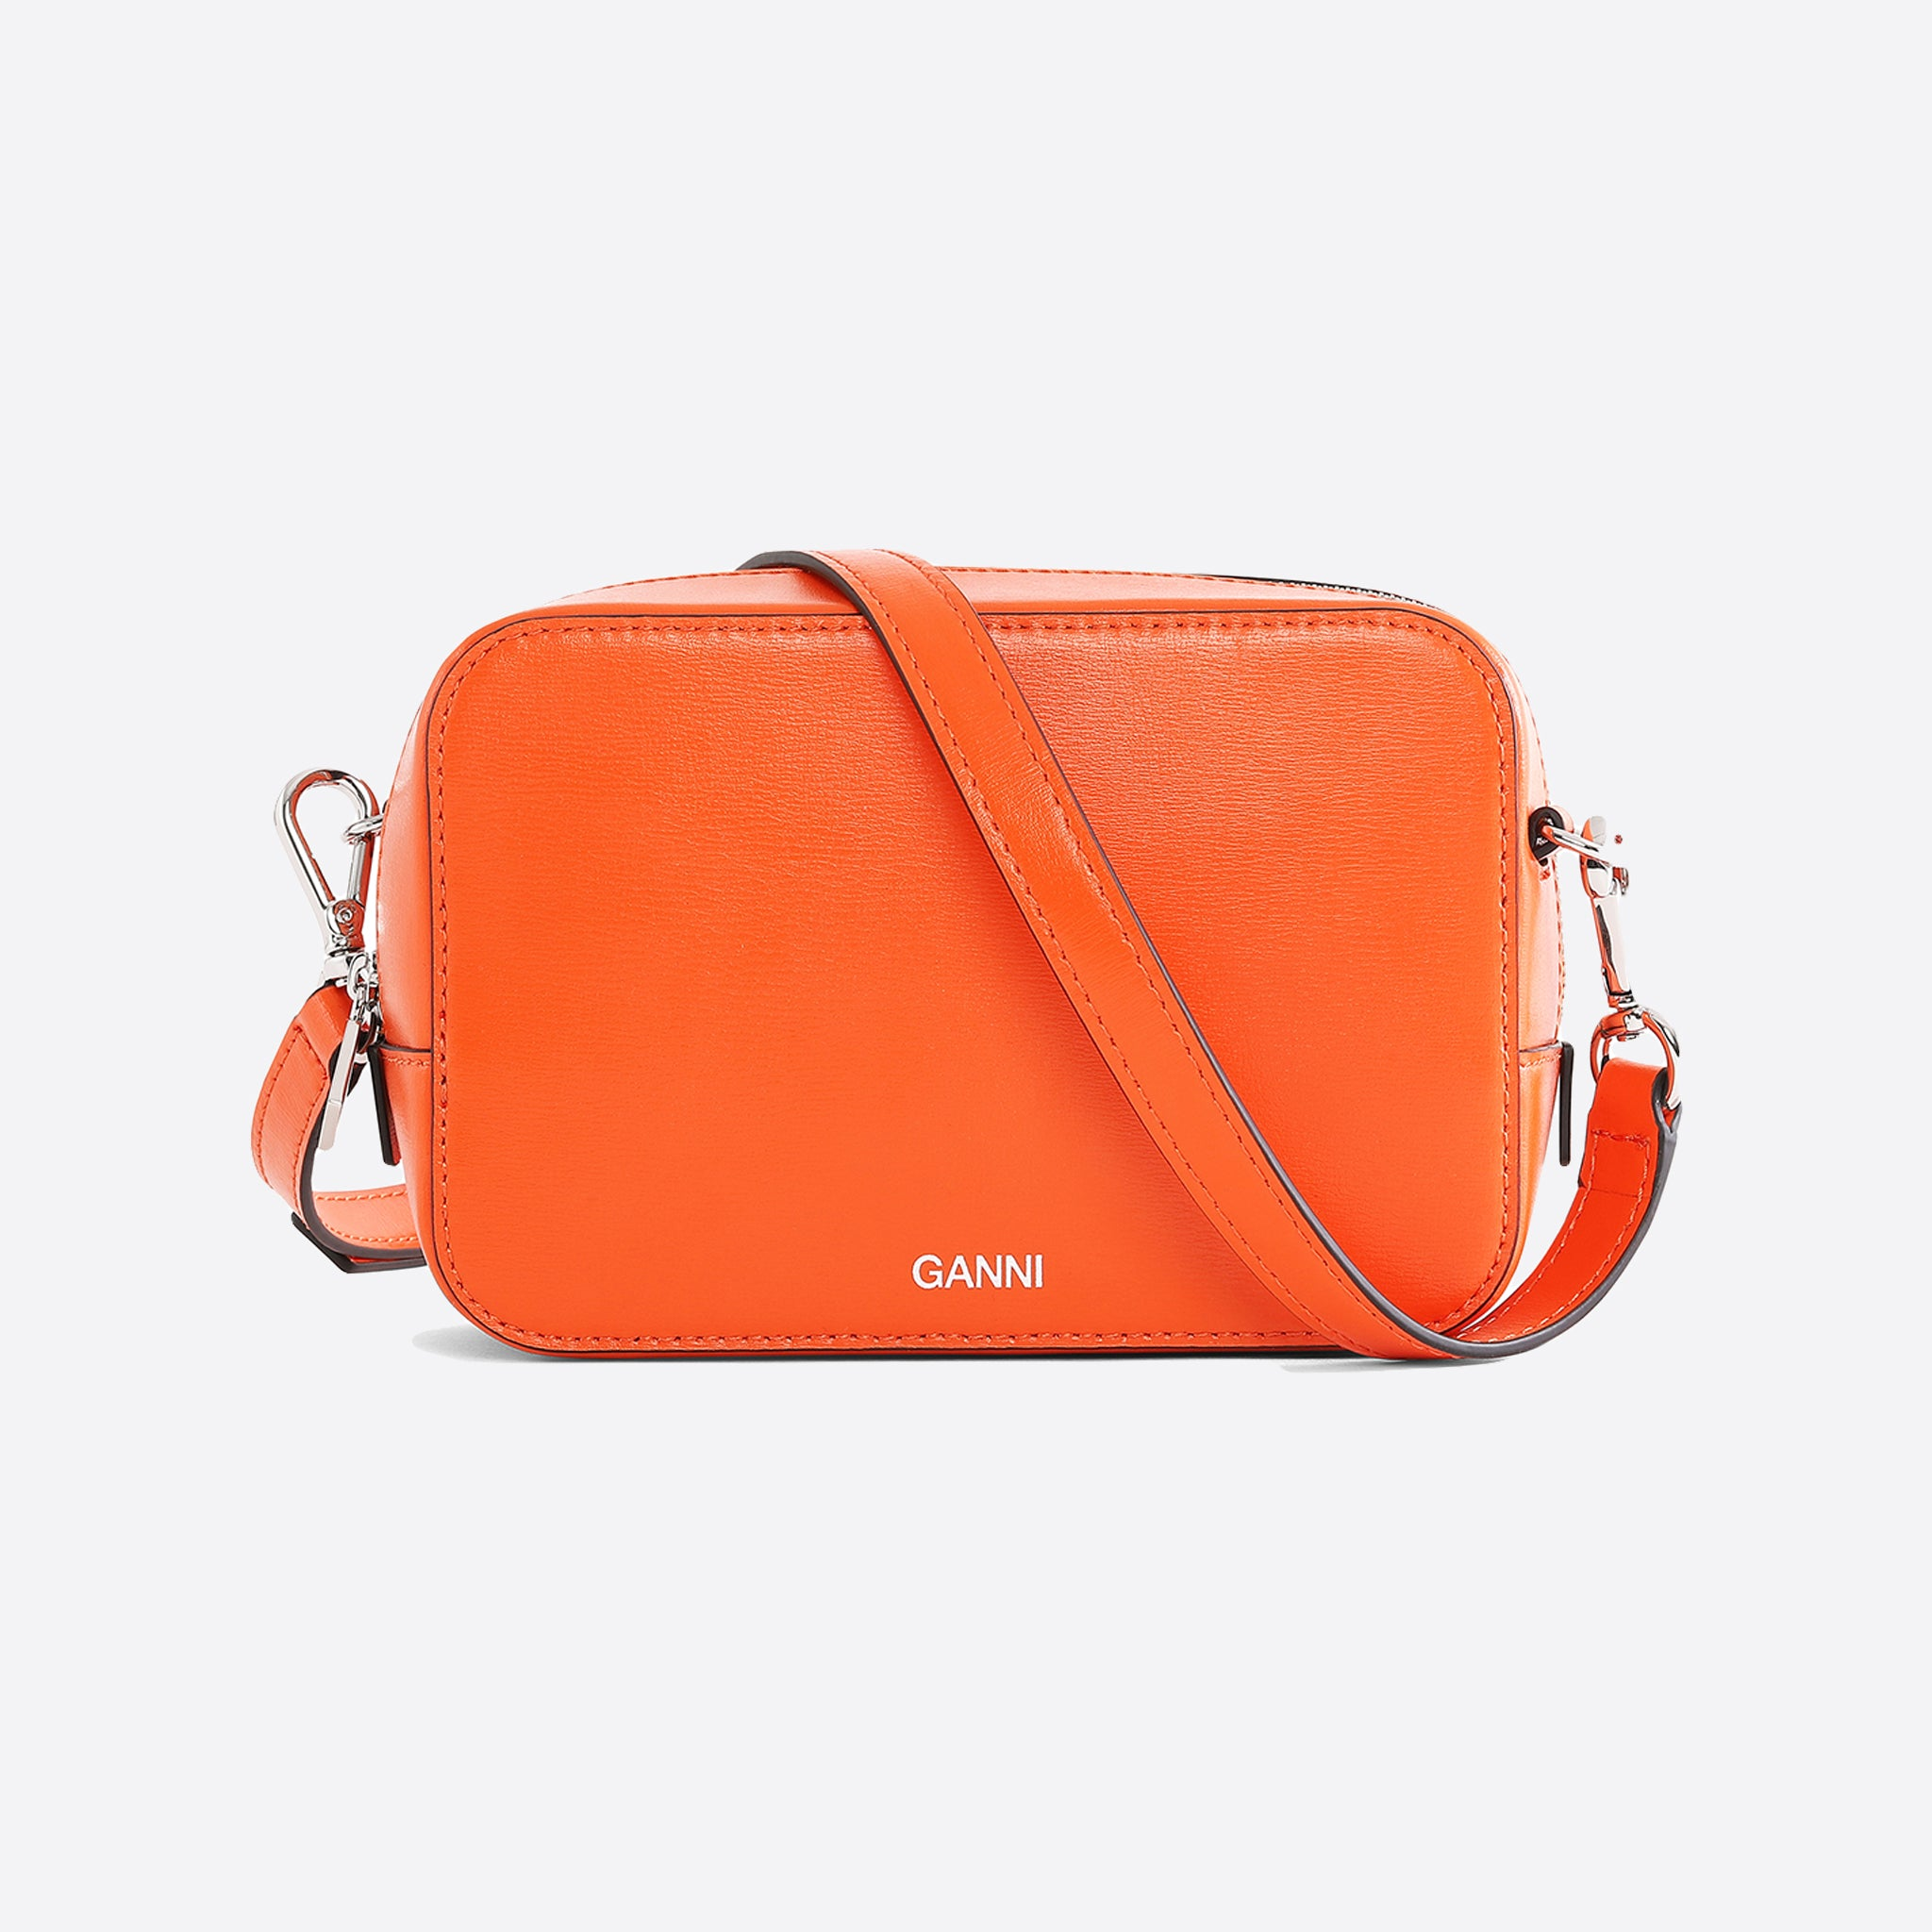 Ganni Textured Leather Bag in Dragon Fire